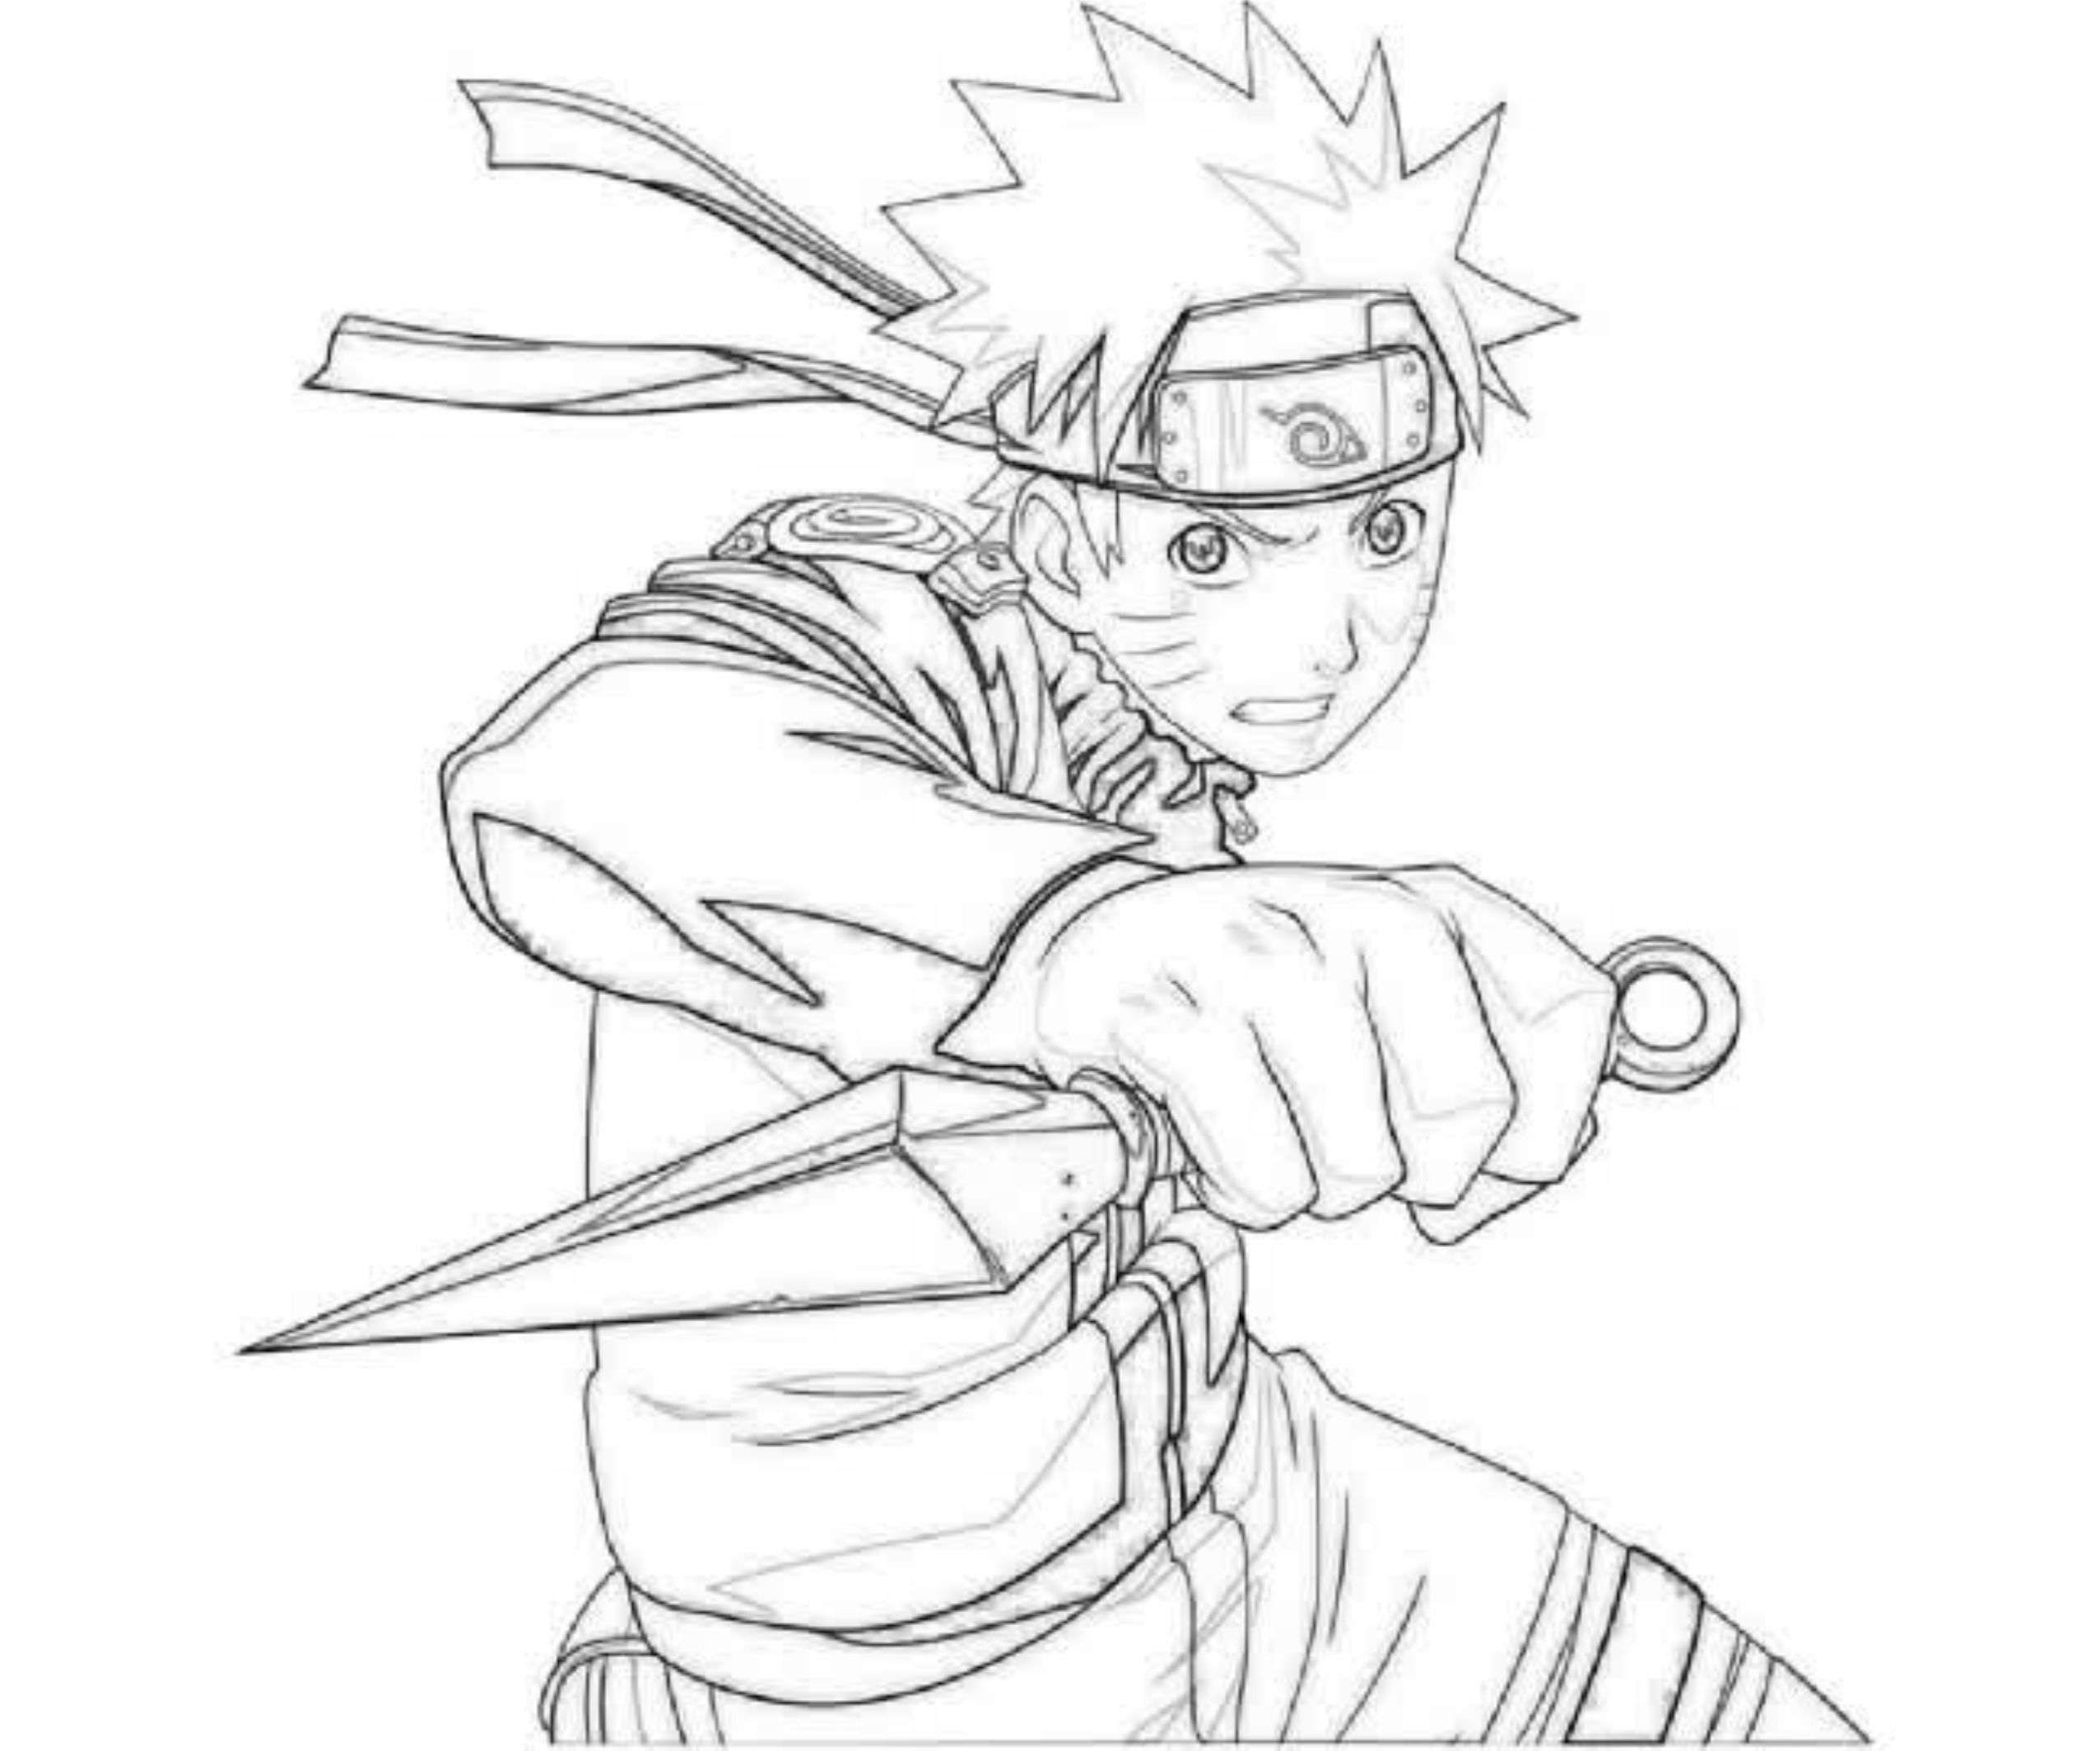 naruto coloring images printable naruto coloring pages to get your kids occupied coloring images naruto 1 1